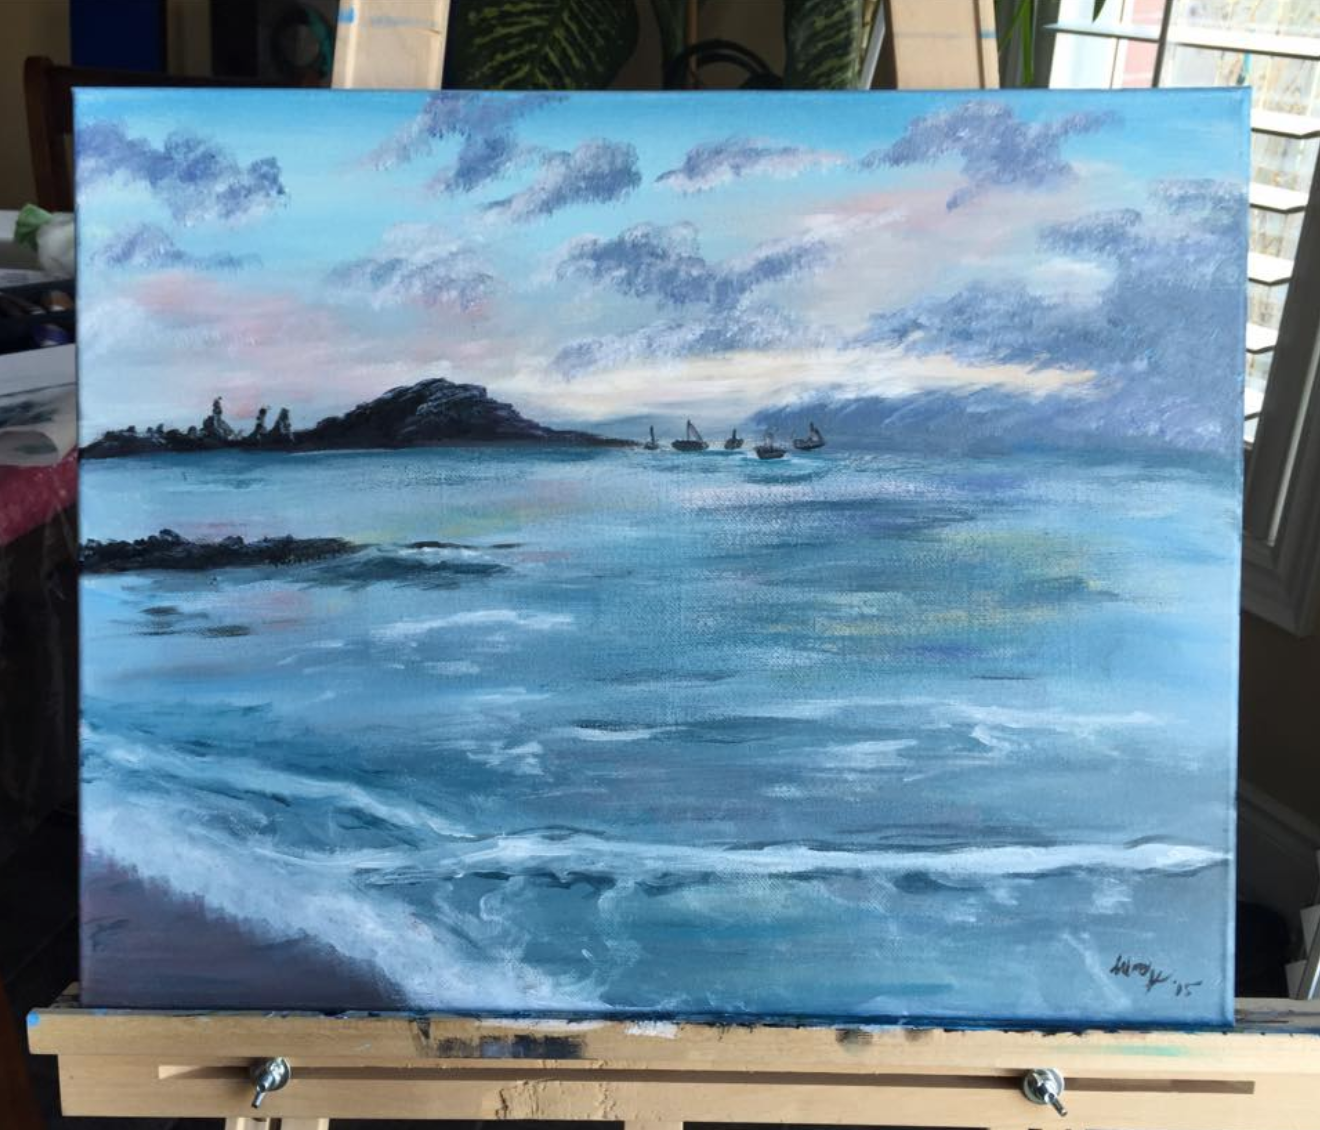 I painted beaches and landscapes like this to escape in my mind for a little while. This one is a painting of Antigua